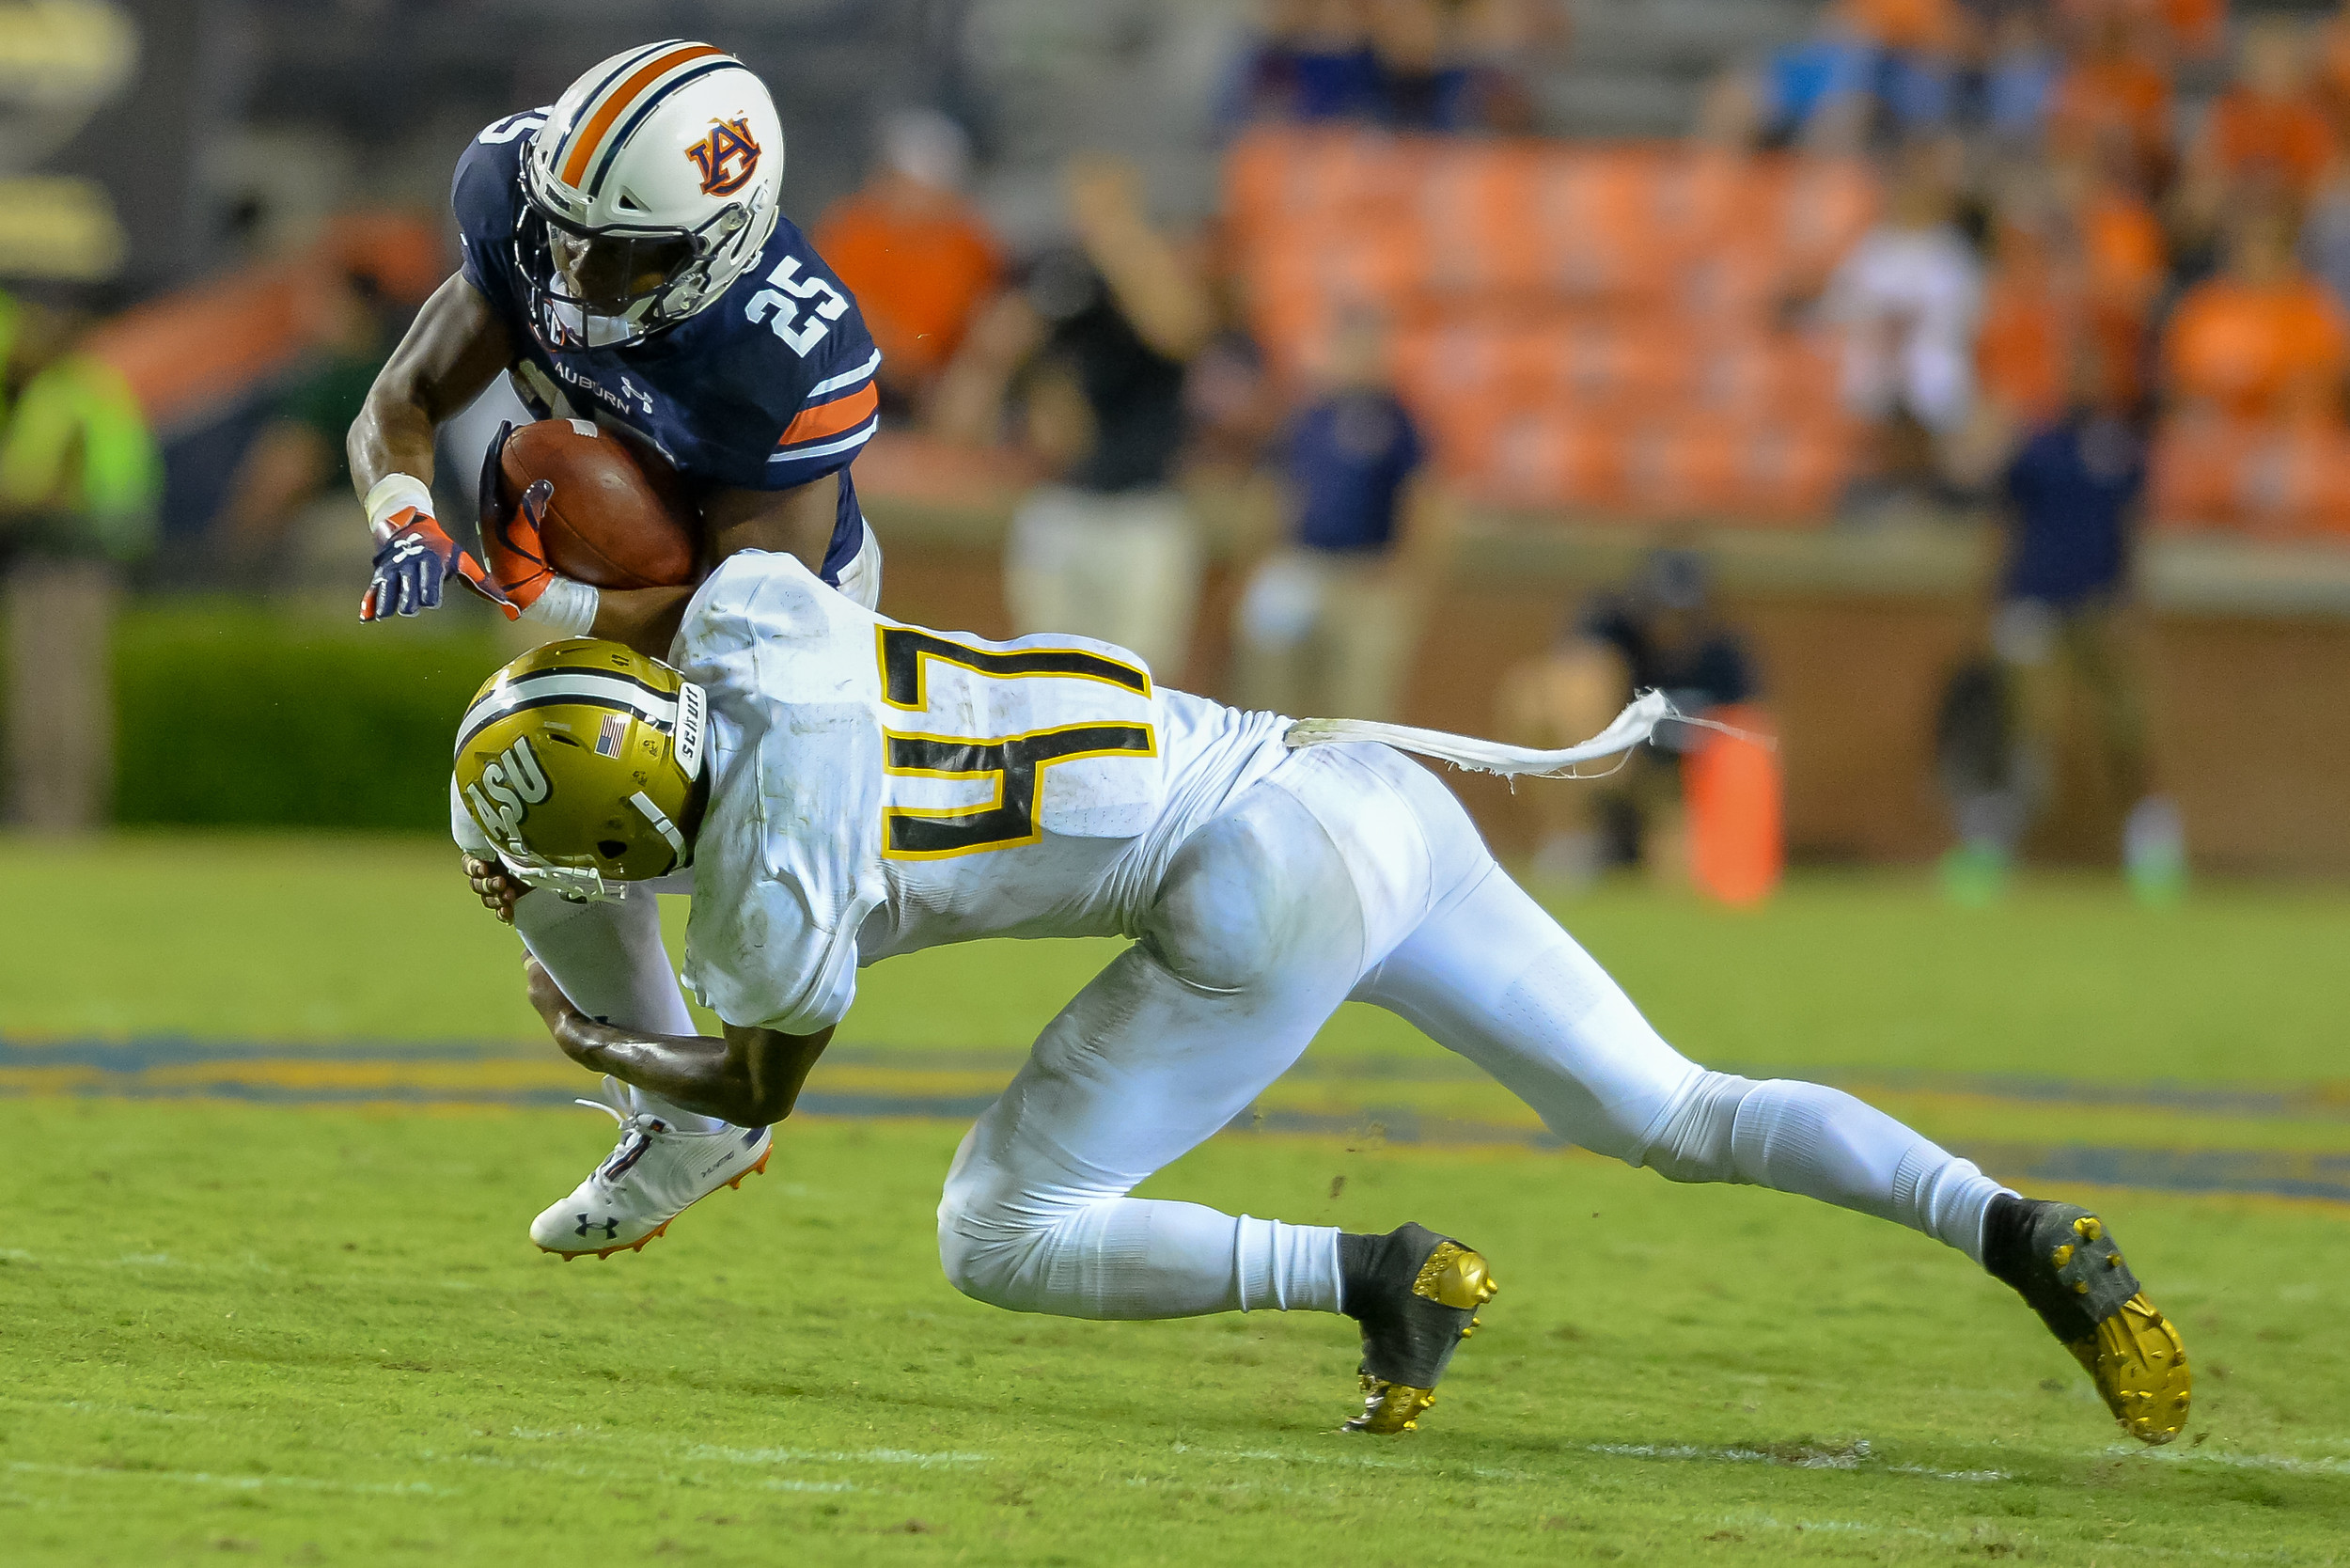 Auburn Tigers running back Shaun Shivers (25) is upended by Alabama State Hornets defensive back Kurron Ramsey (47) during the second half of Saturday's game, at Jordan Hare Stadium in Auburn Atlanta. (Contributed by Jeff Johnsey)